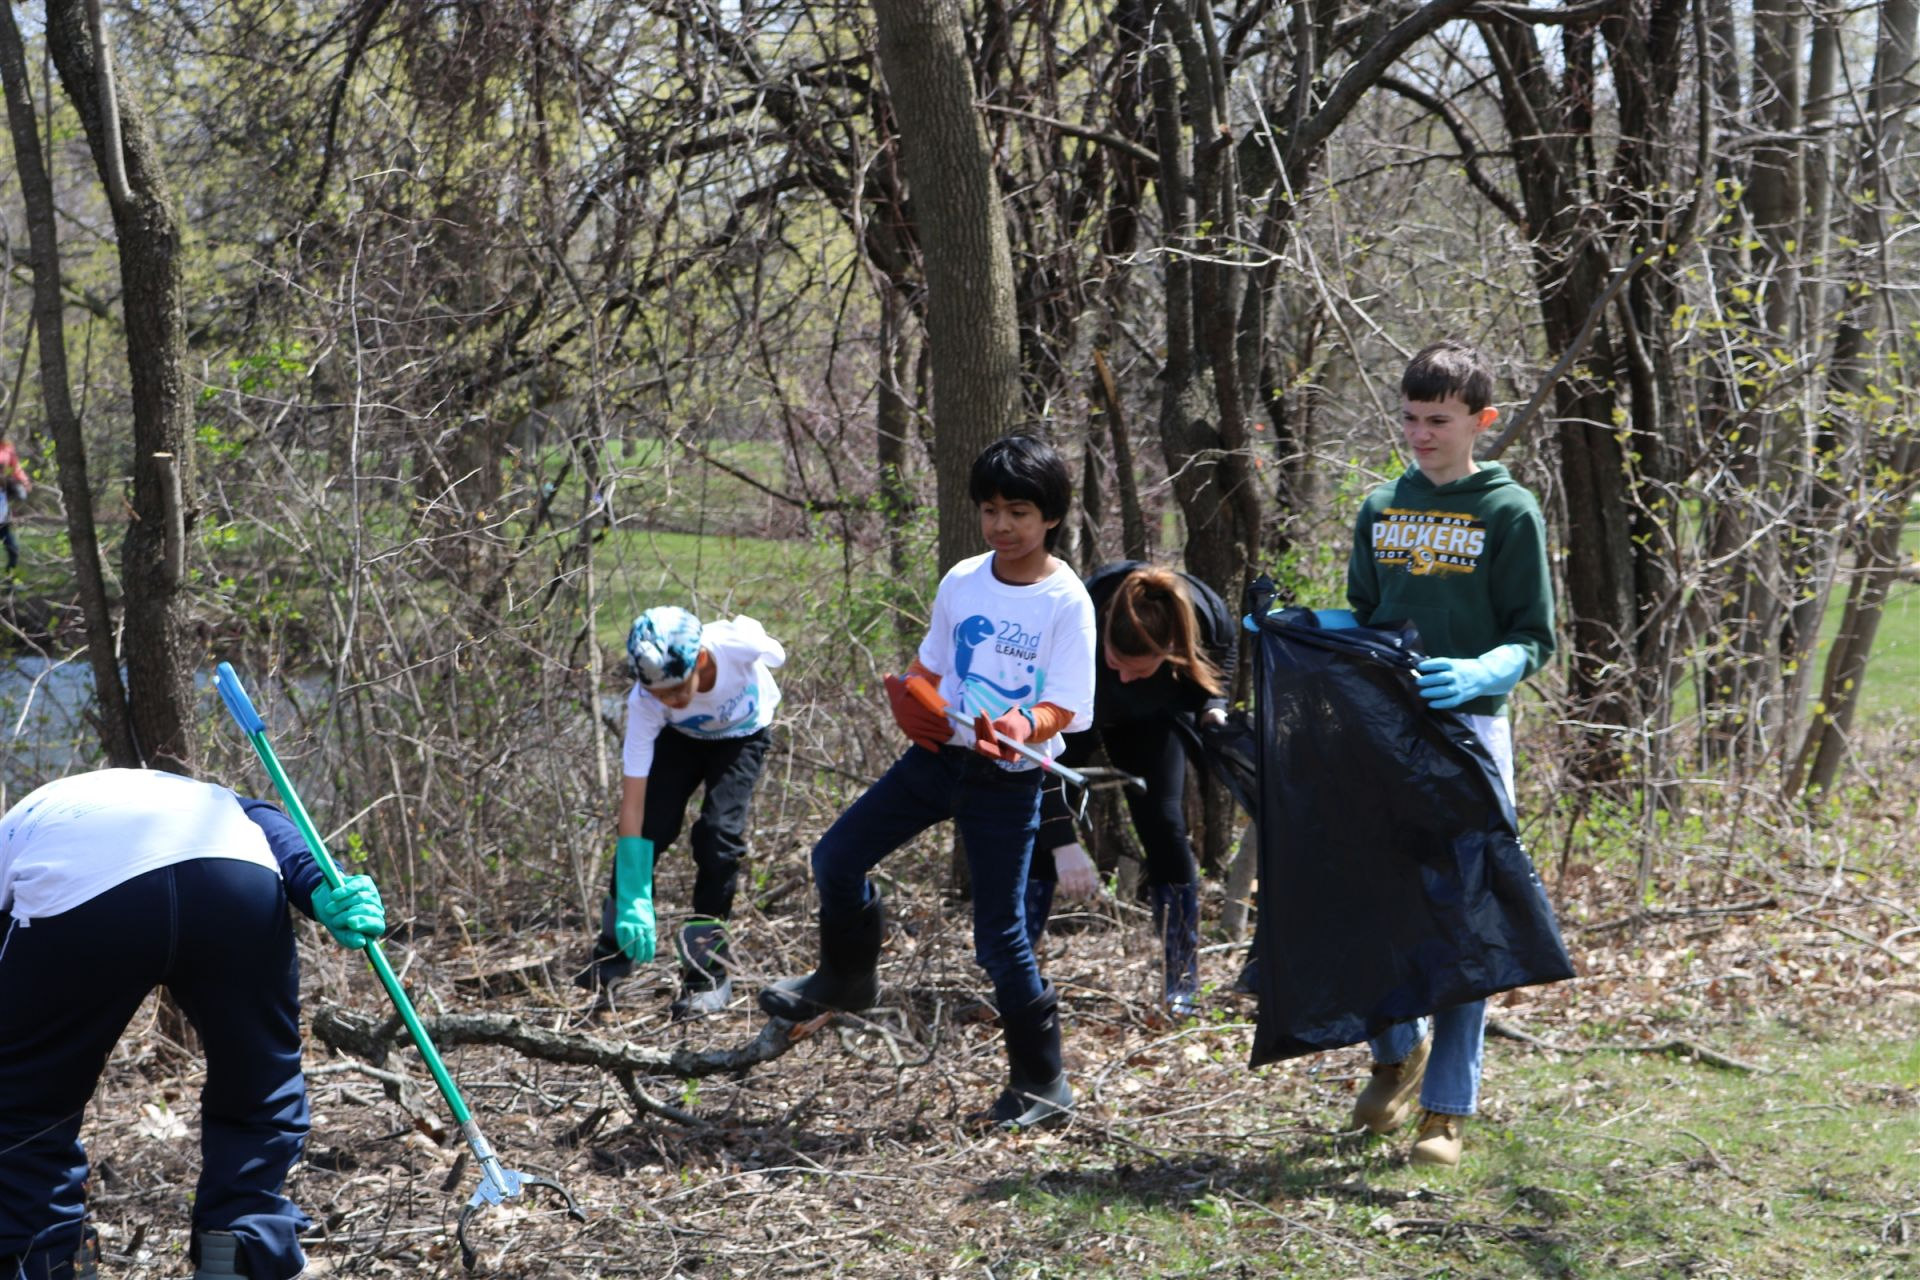 Students collect trash in large bags during a river cleanup trip.